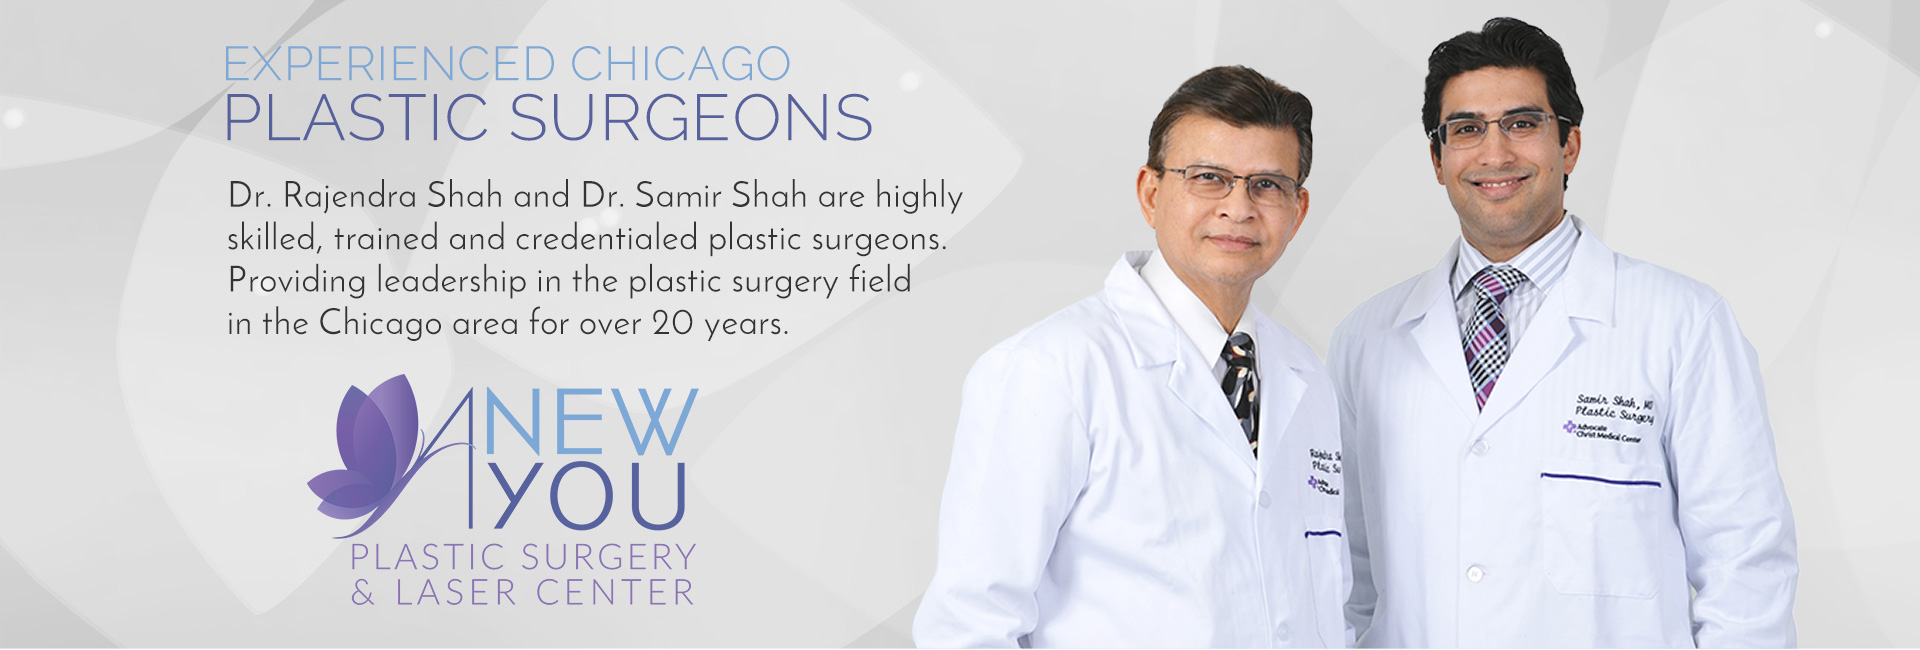 A New You Plastic Surgery Center - Oak Lawn, IL reviews | Cosmetic Surgeons at 4944 95th St - Oak Lawn IL